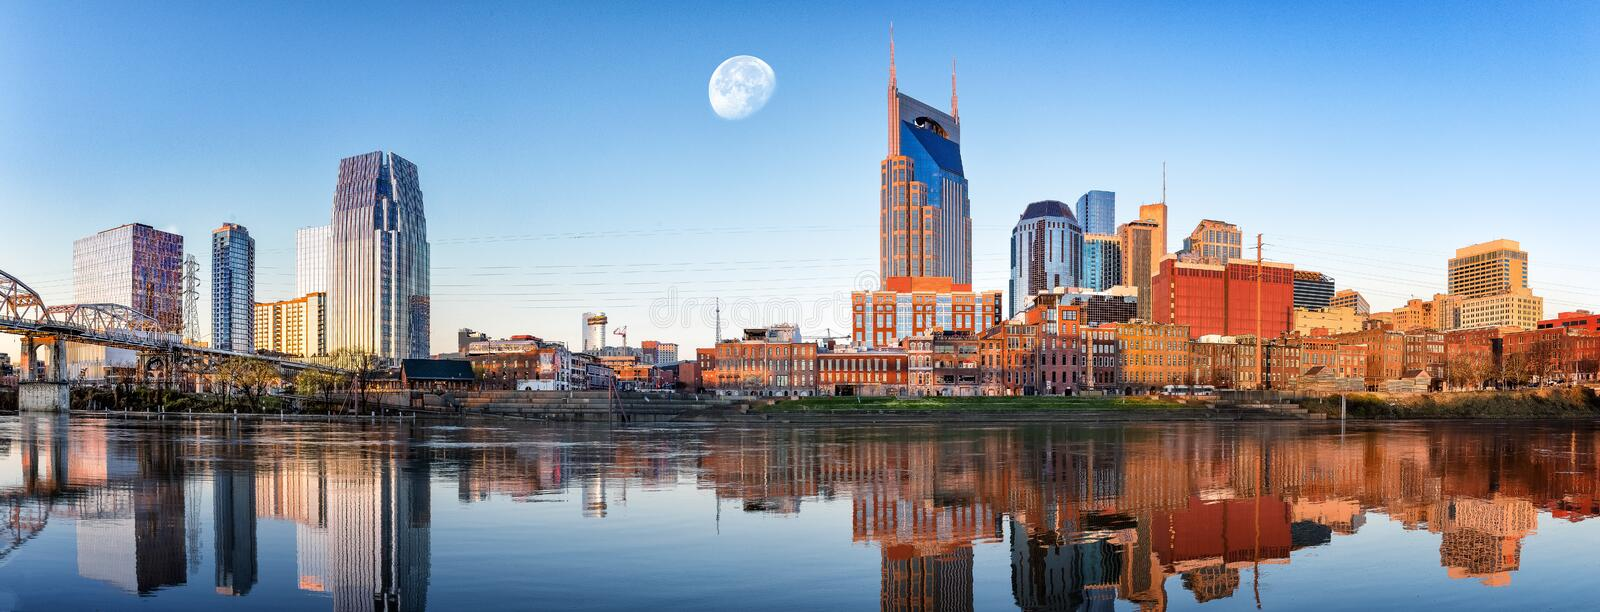 Nashville Skyline in the morning royalty free stock image